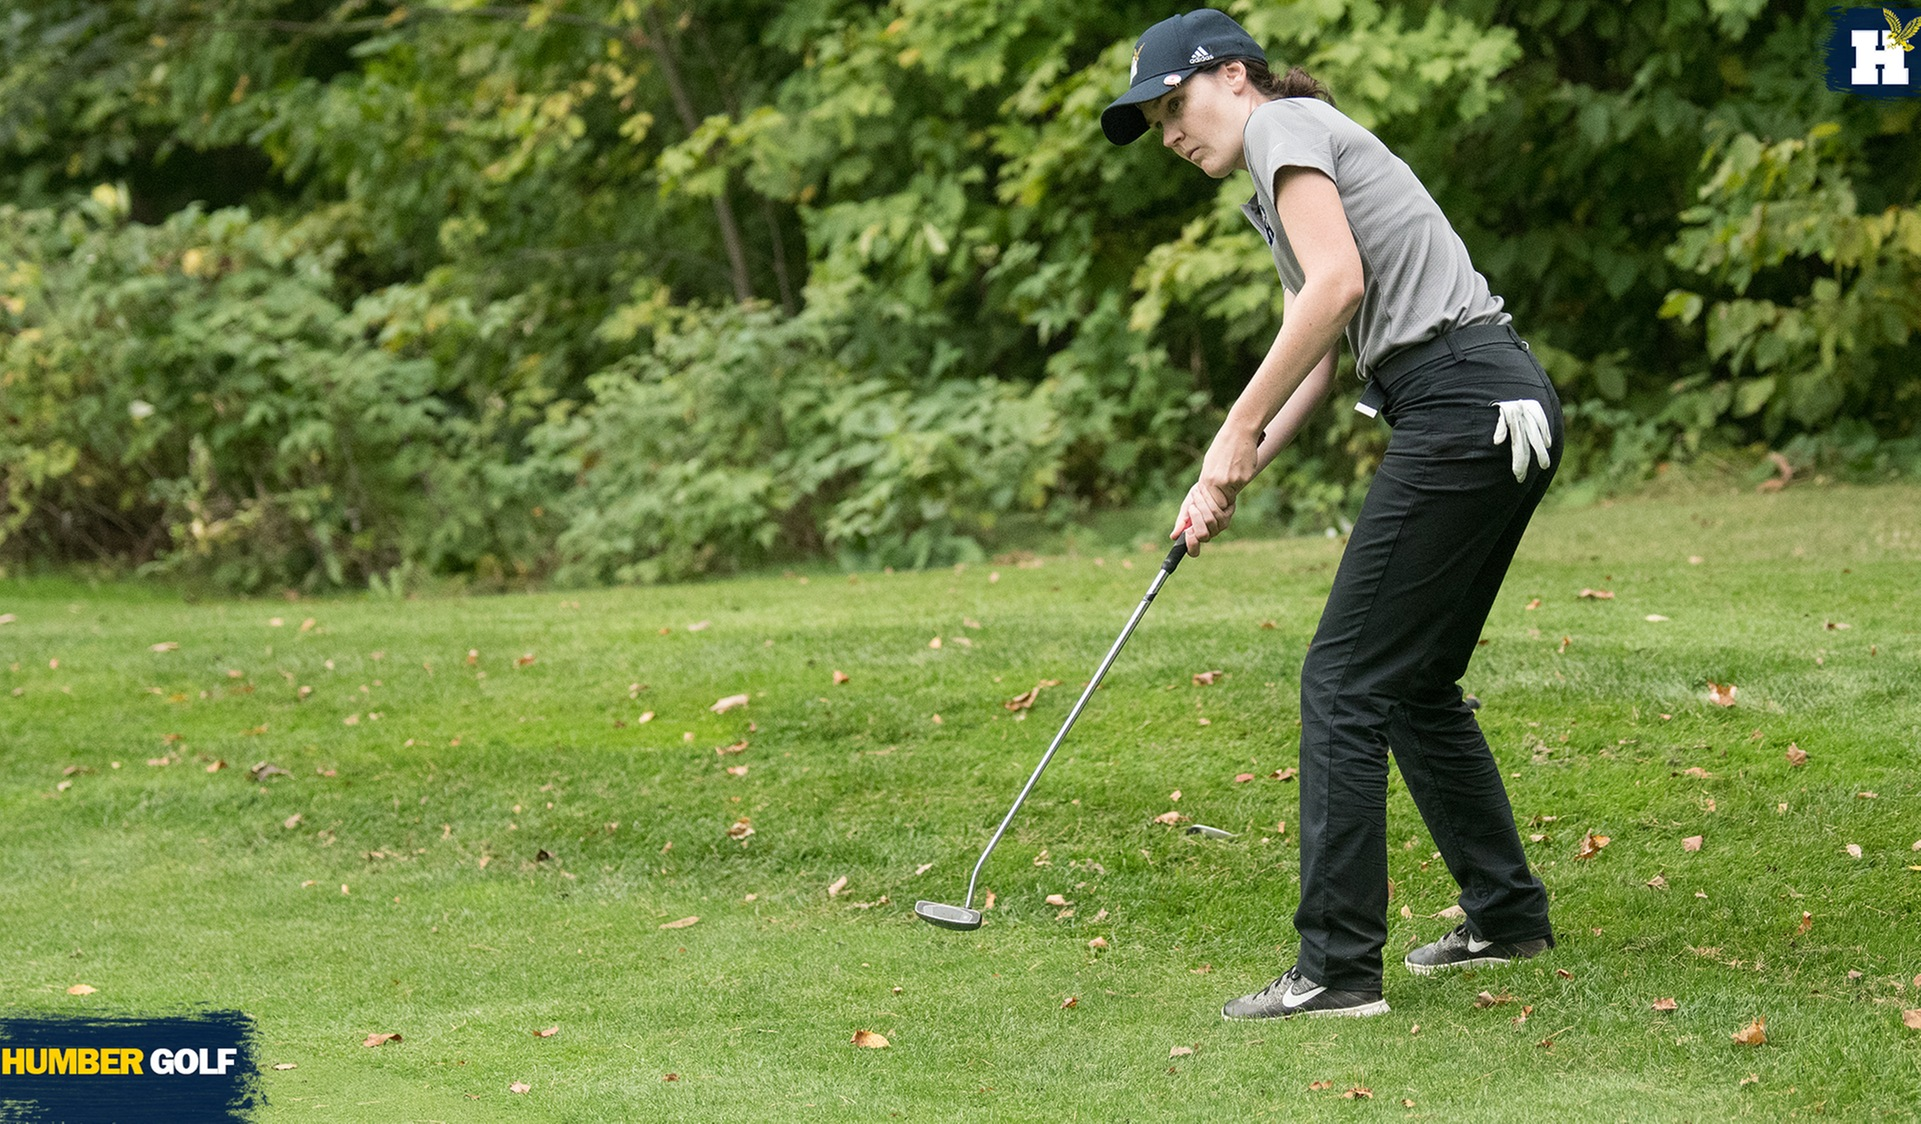 McCALLUM REMAINS IN SECOND AFTER ROUND TWO AT THE CHAMPIONSHIP